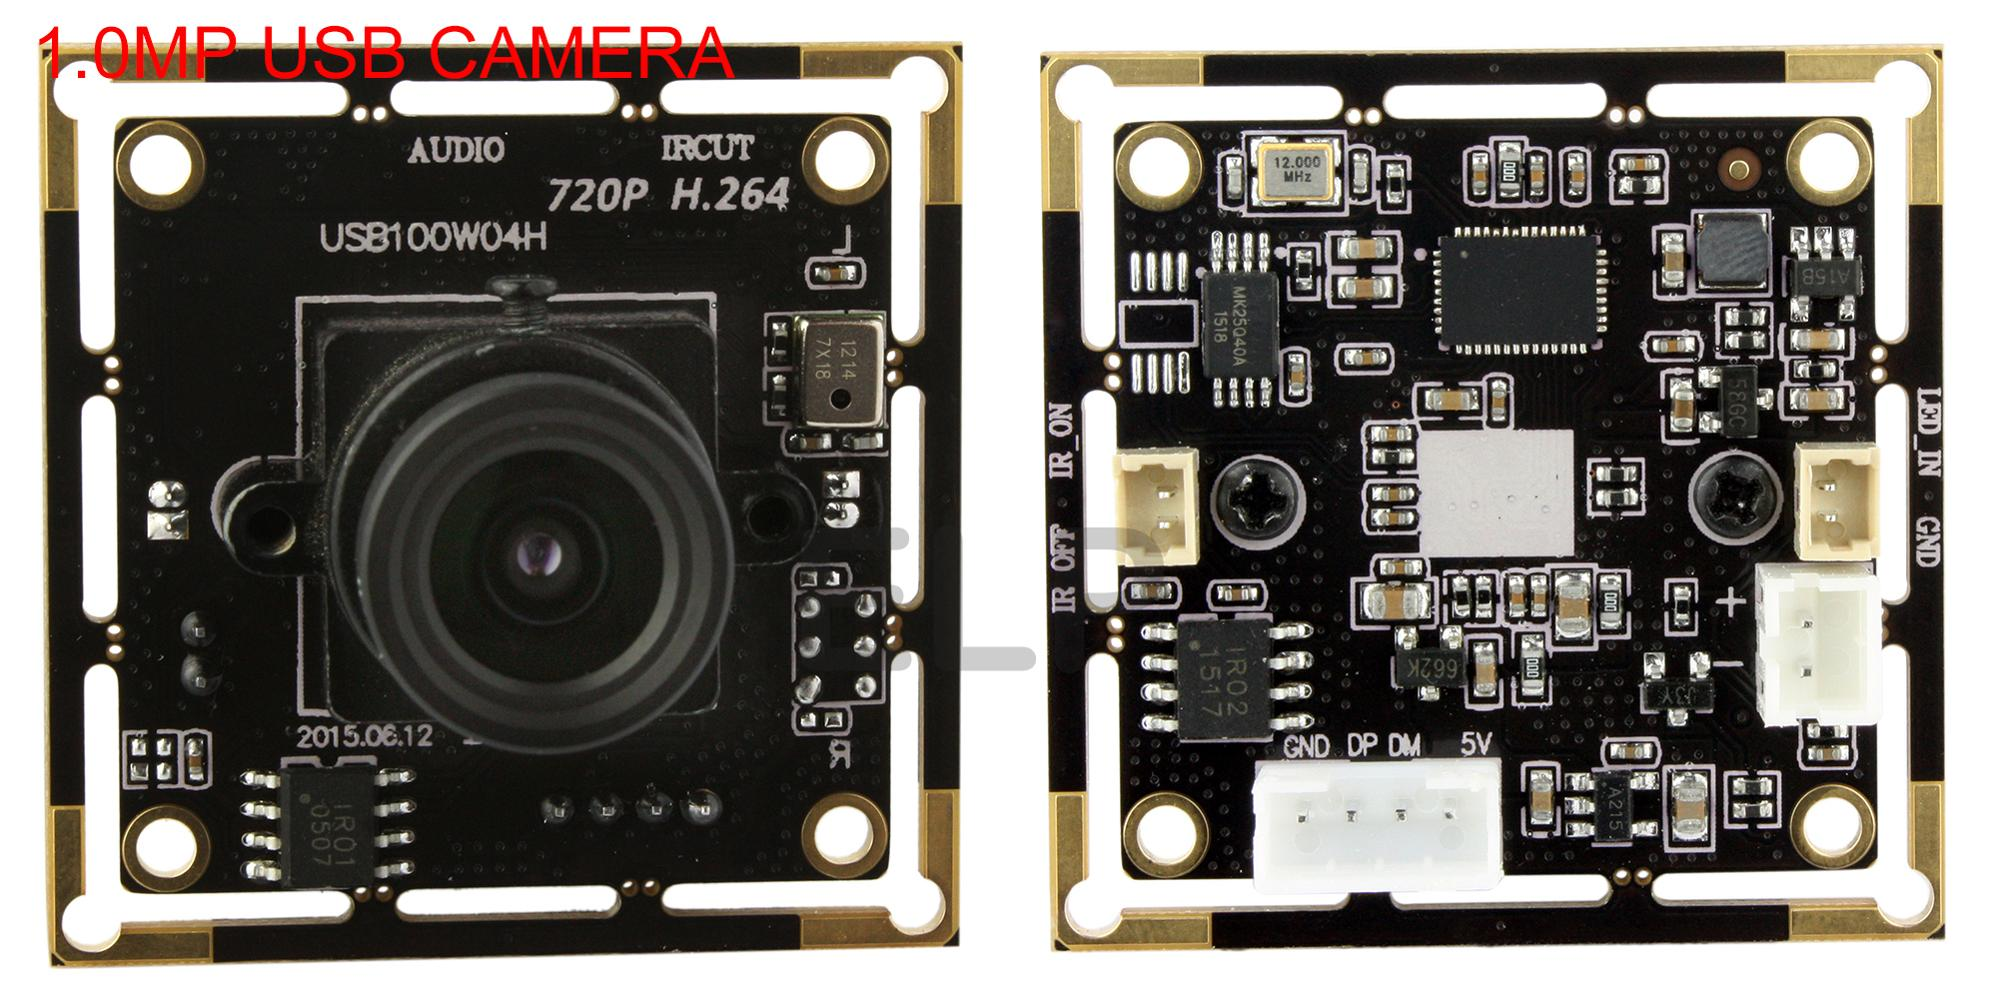 ELP Free Driver 1.0megapixels Webcam Microphone Support OTG Full HD CMOS H.264 Mobile Phone Camera Module